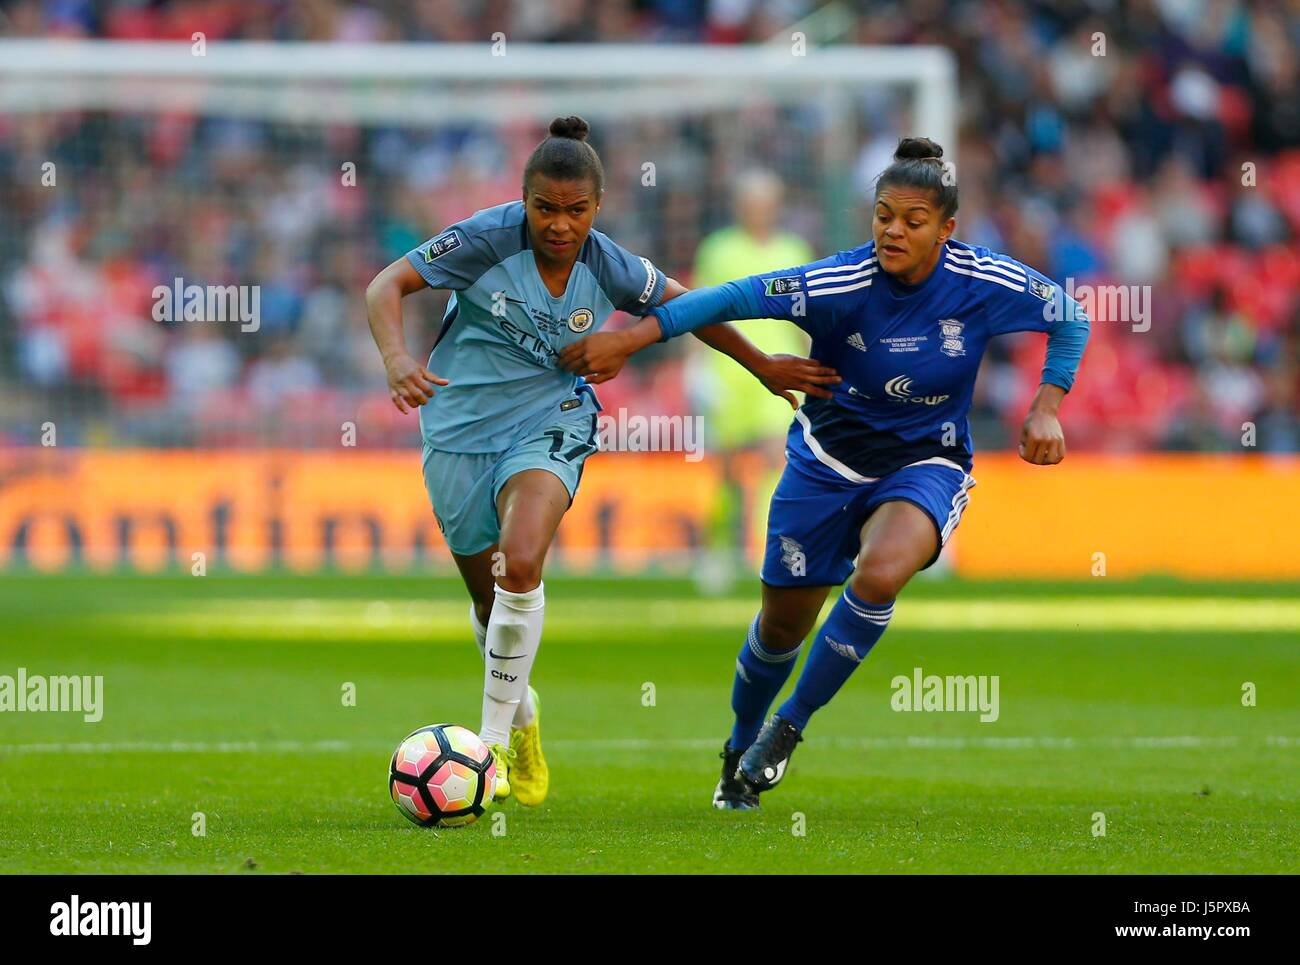 Nikita Parris of Manchester City (L) vies for the ball with Jessica Carter of Birmingham during the SSE Women's - Stock Image